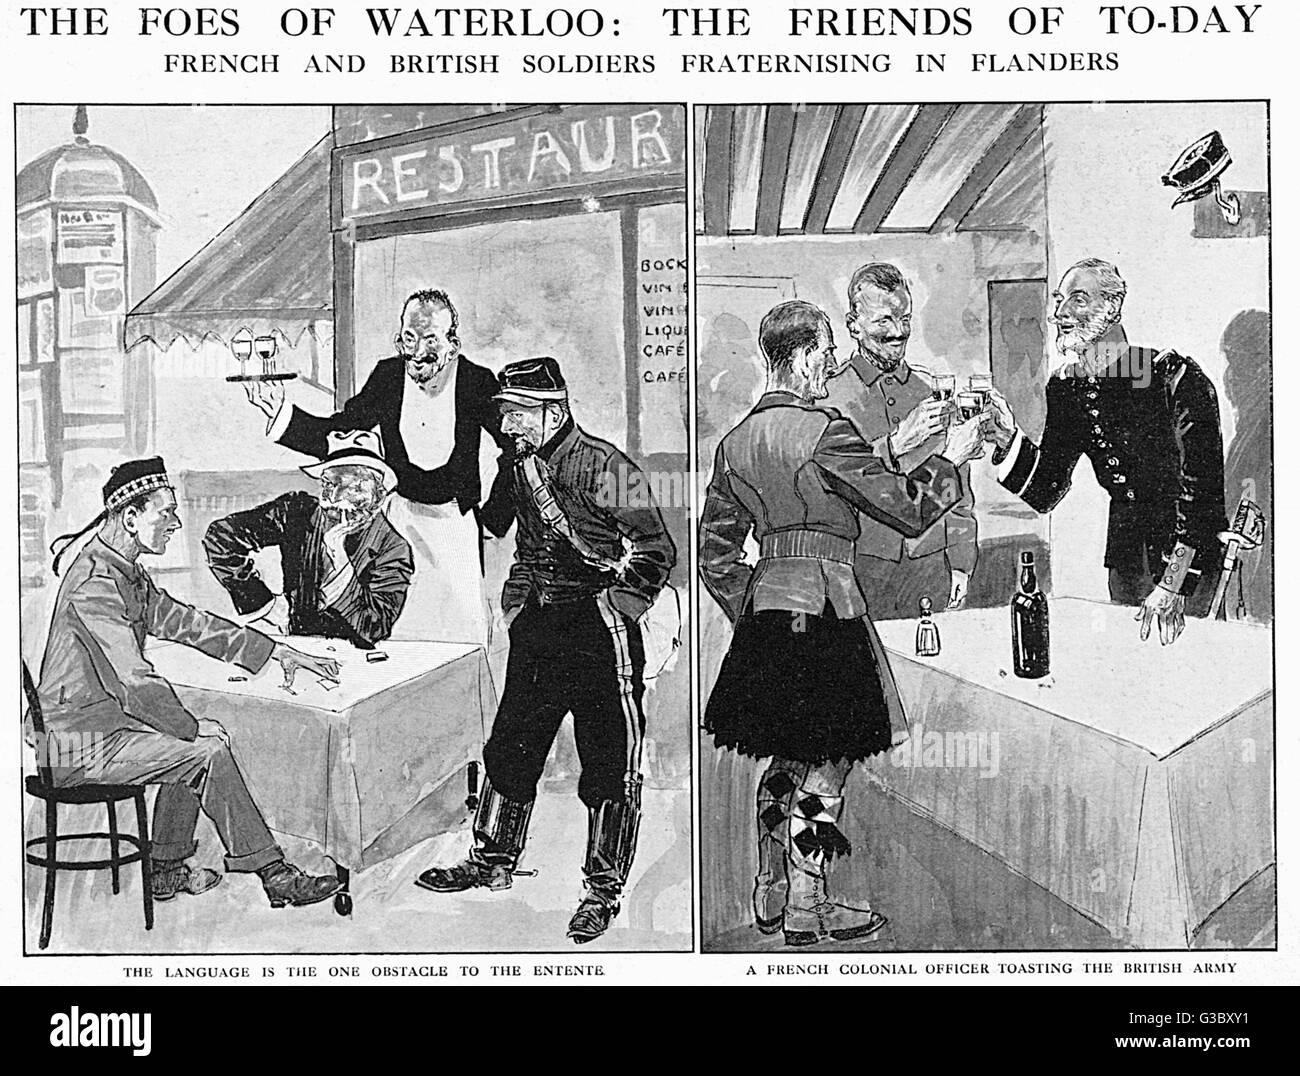 WW1 - Inter-Allied Fraternisation - The Friends of Today, not the Foes of Waterloo - British and French soldiers - Stock Image